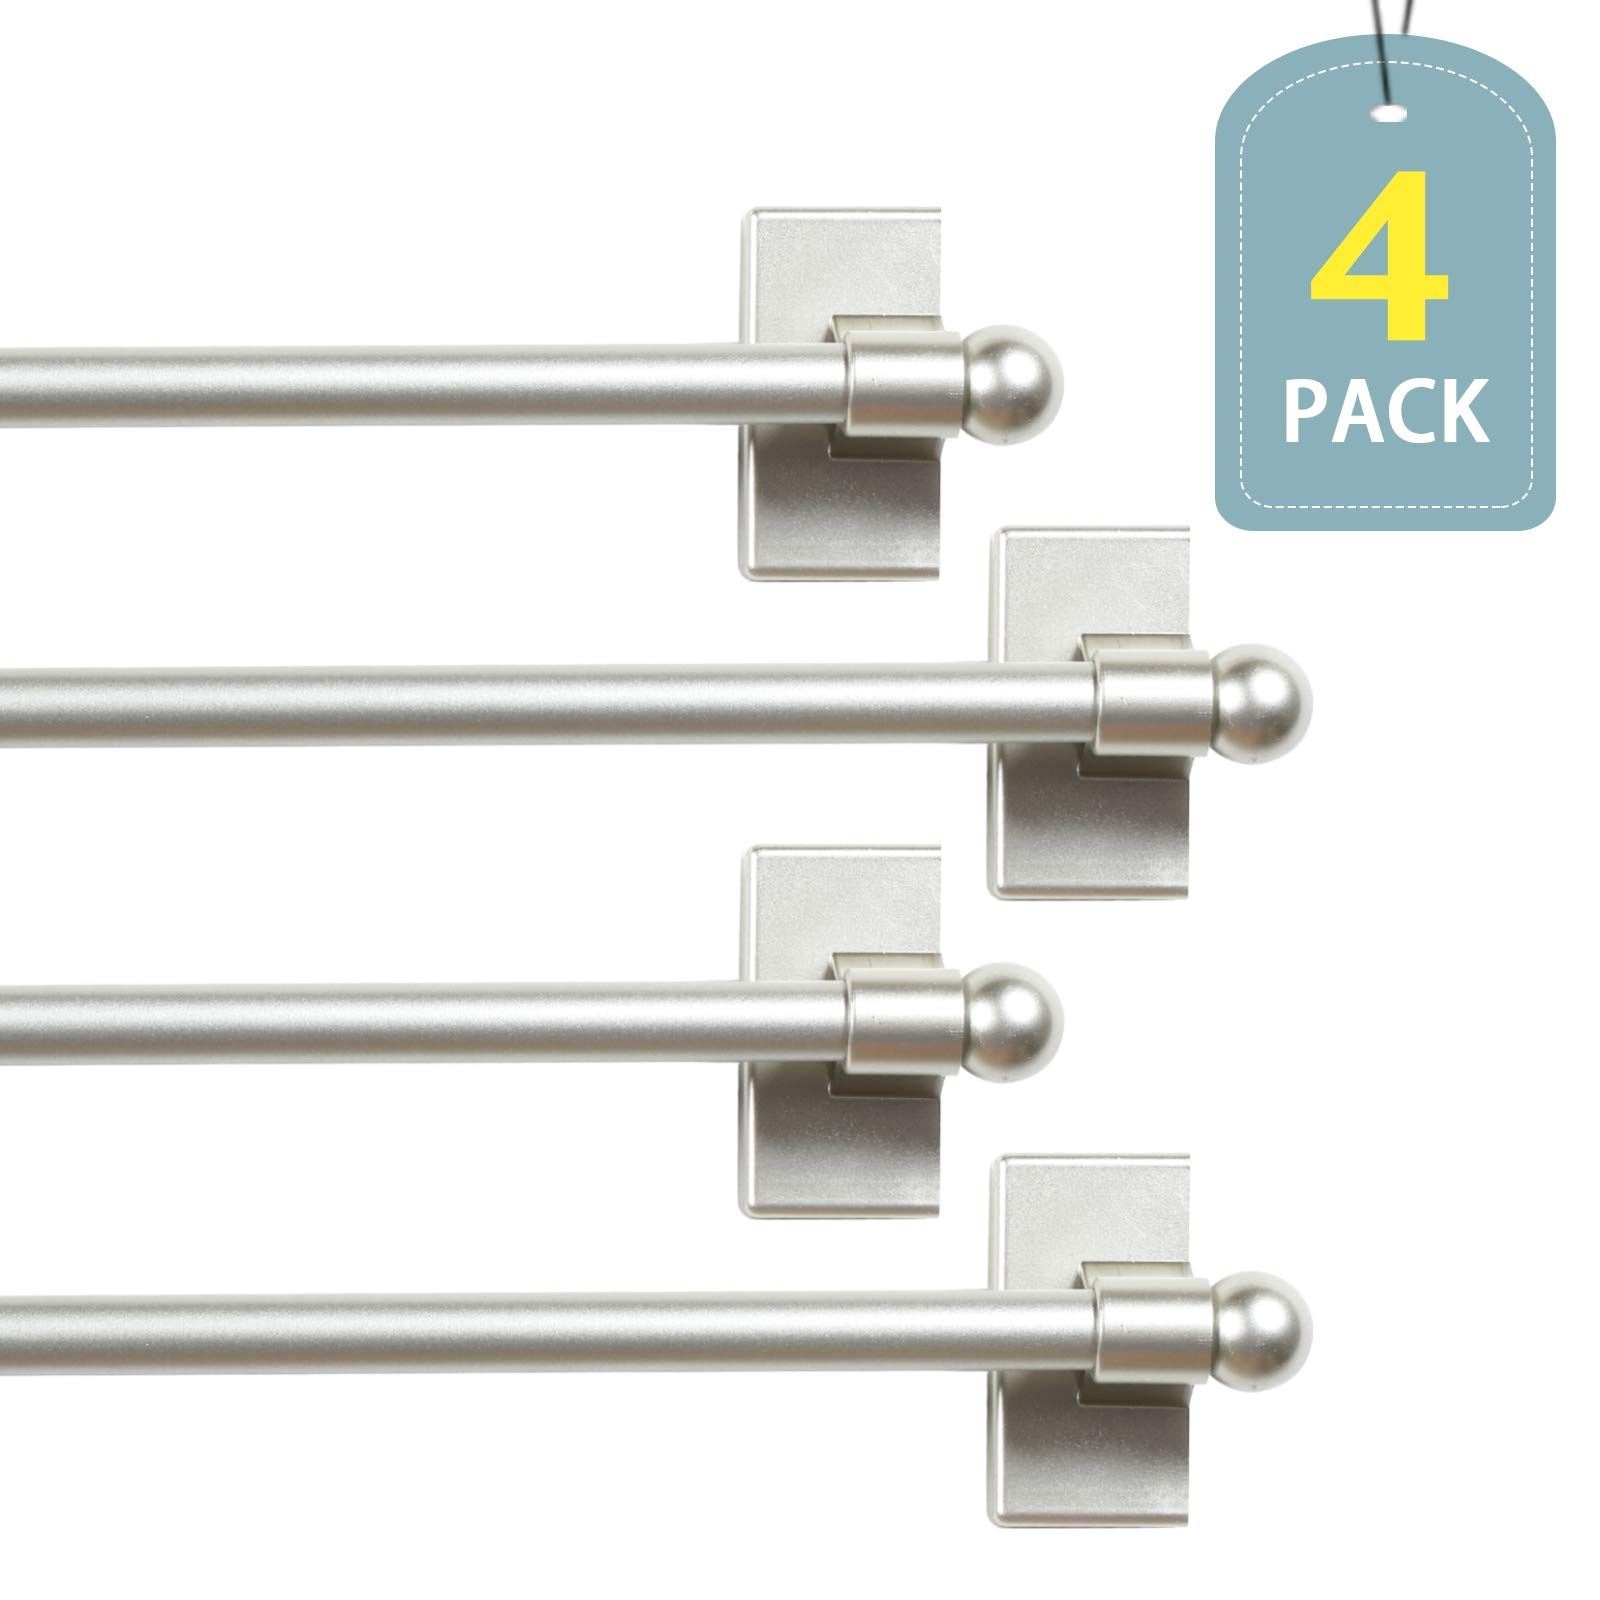 H.VERSAILTEX Wide Use Adjustable Appliance Magnetic Rods for Valances and Hand Towels, Petite Ball Ends, 16 to 28 Inch, Nickel, 1/2 Inch Diameter, 4 Packs by H.VERSAILTEX